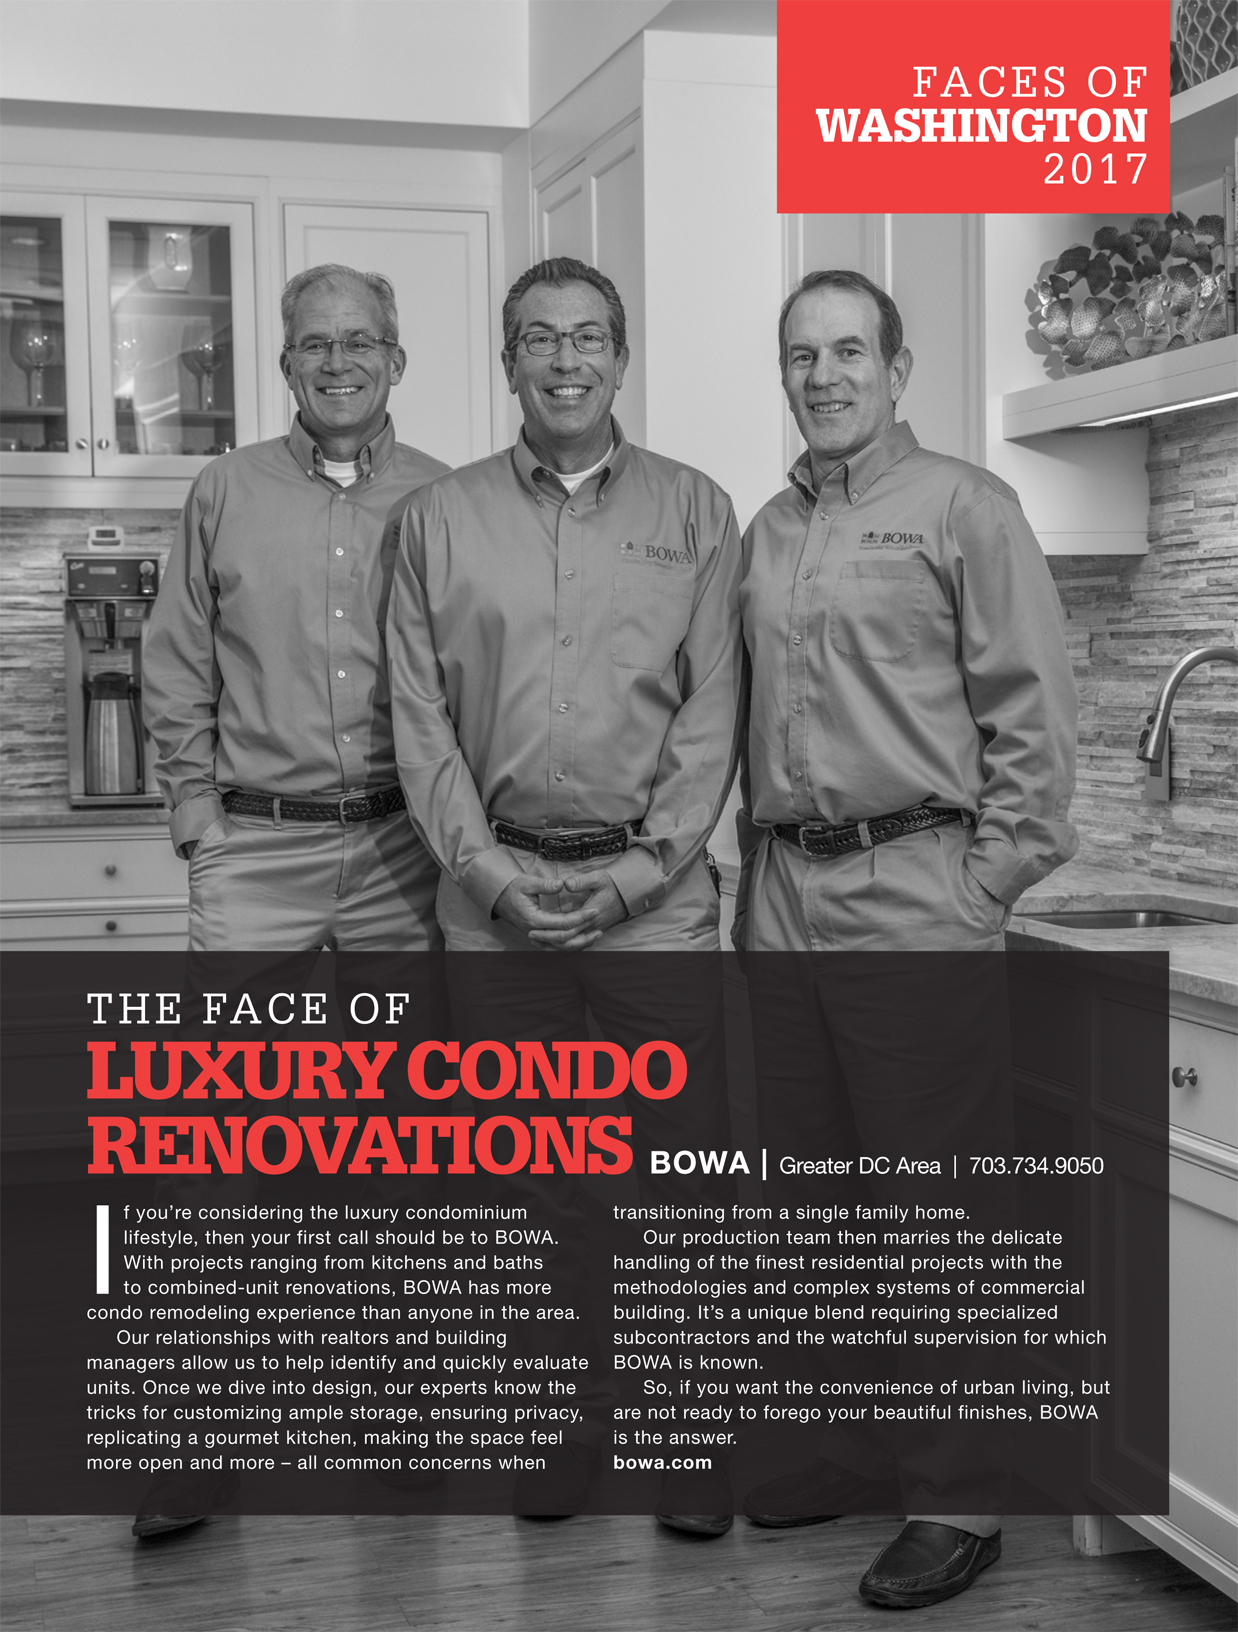 Washingtonian Profiles - Faces of Luxury Condo Renovations